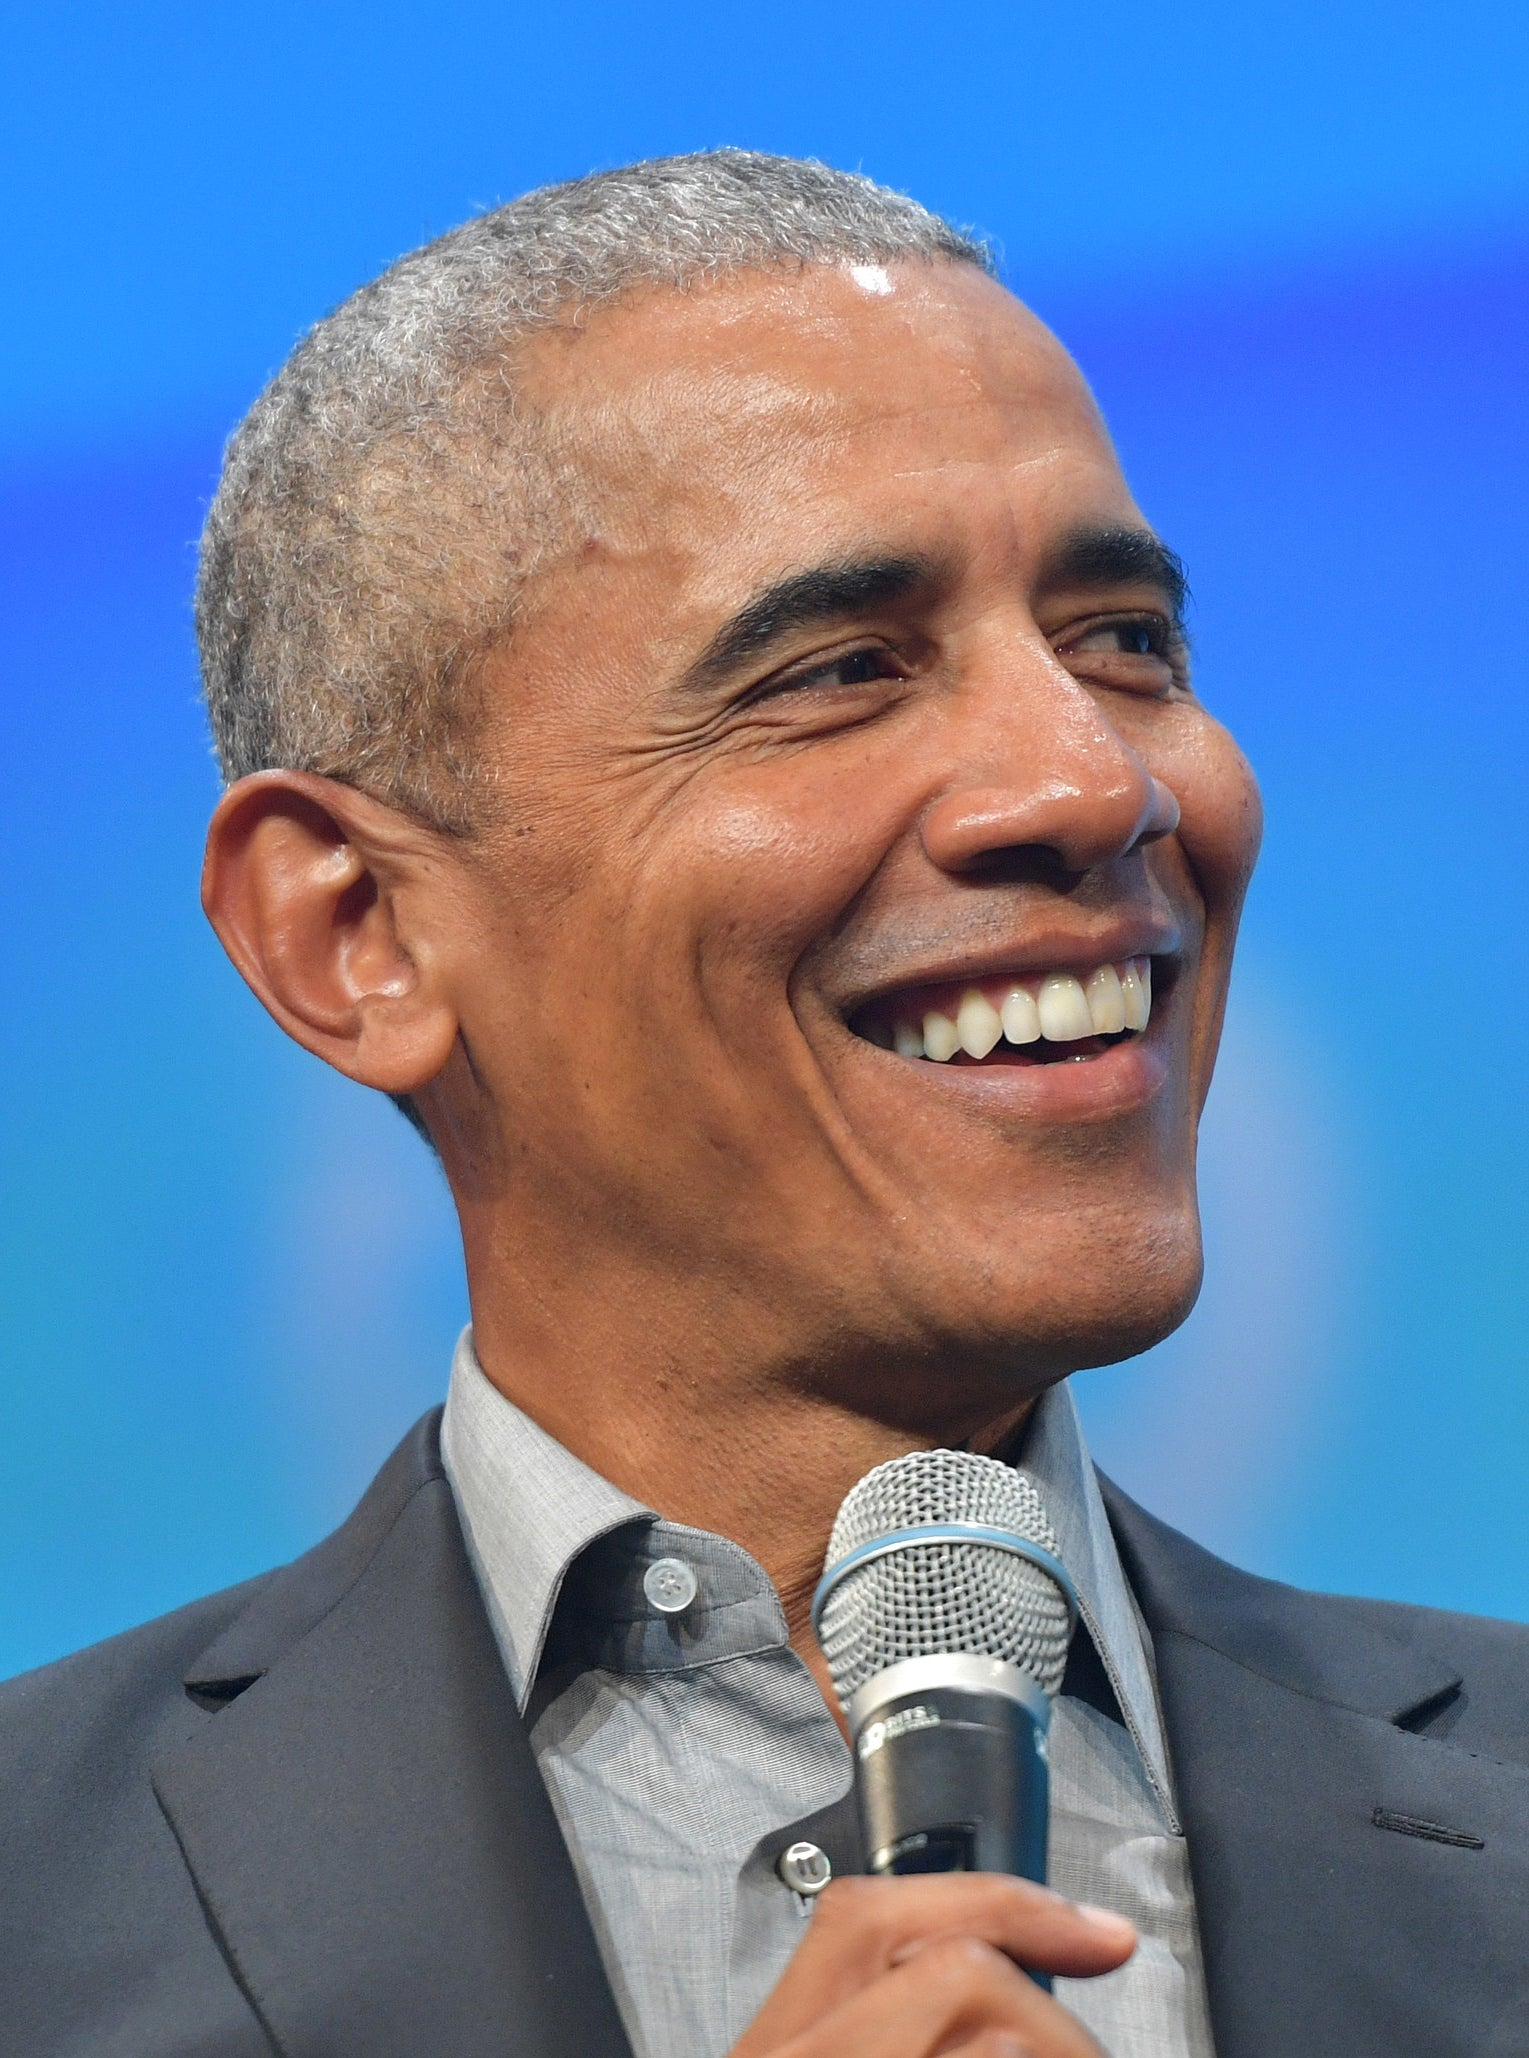 President Obama smiling as he holds a mic, wearing a suit